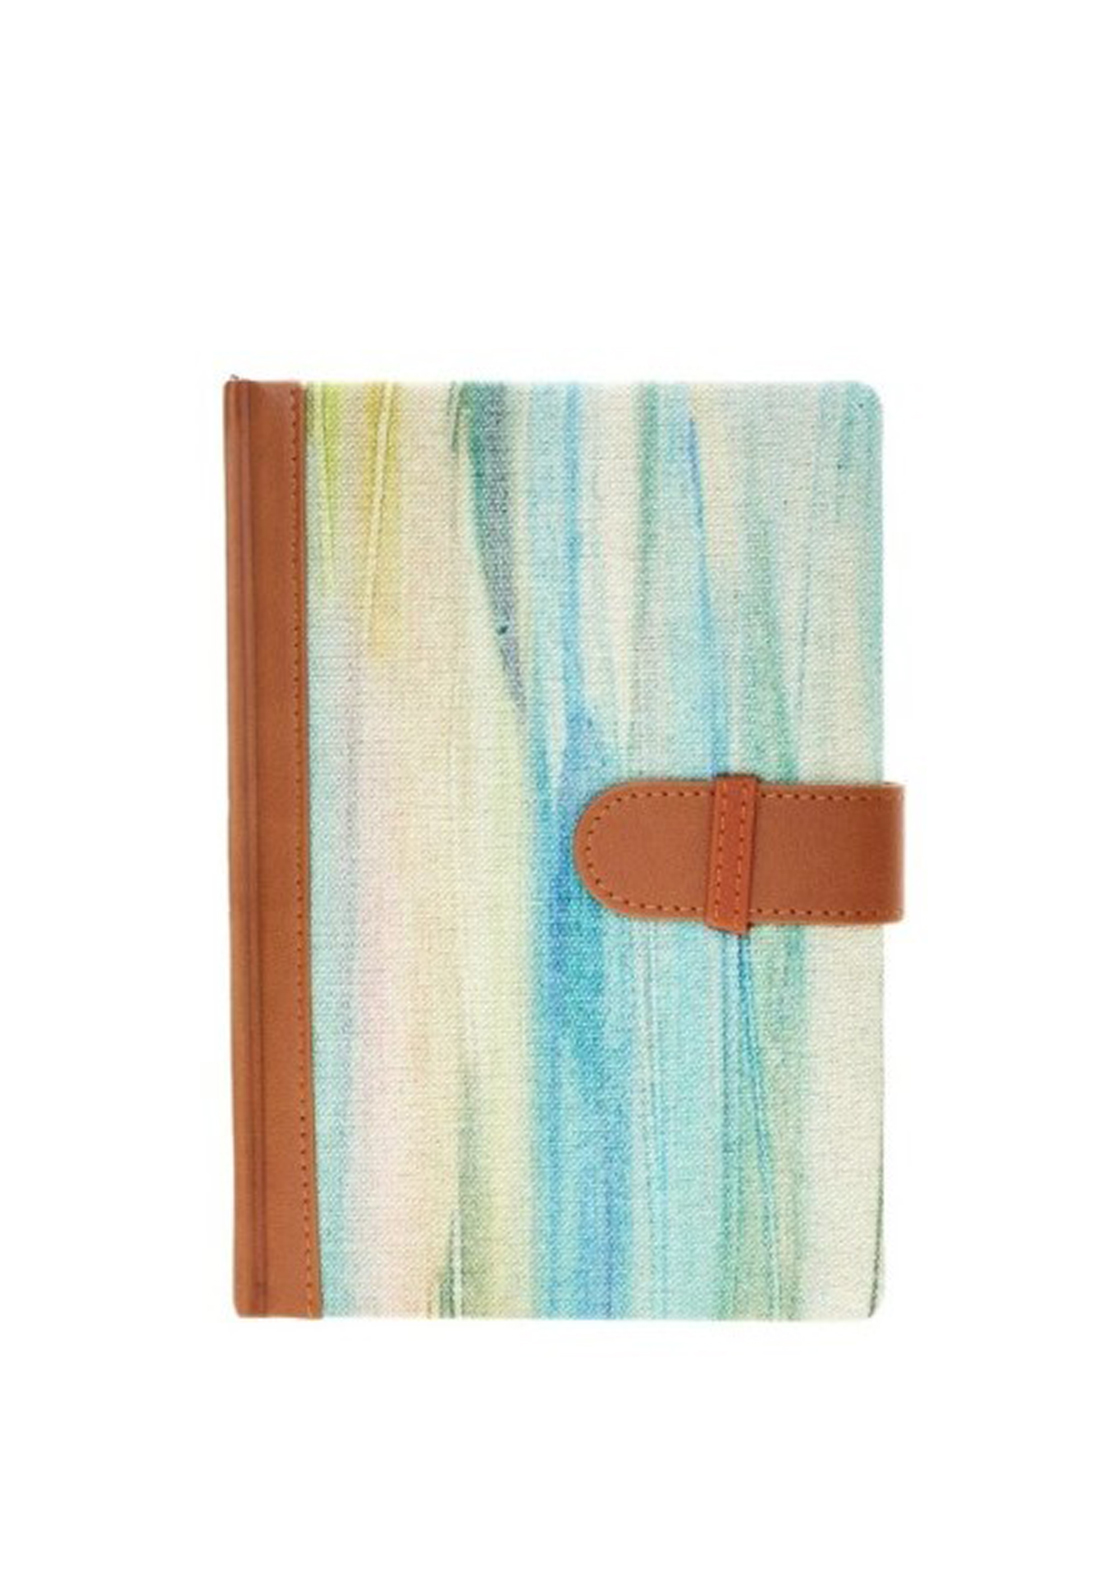 Voyage Galatea Lined Notebook 18 X 25cm